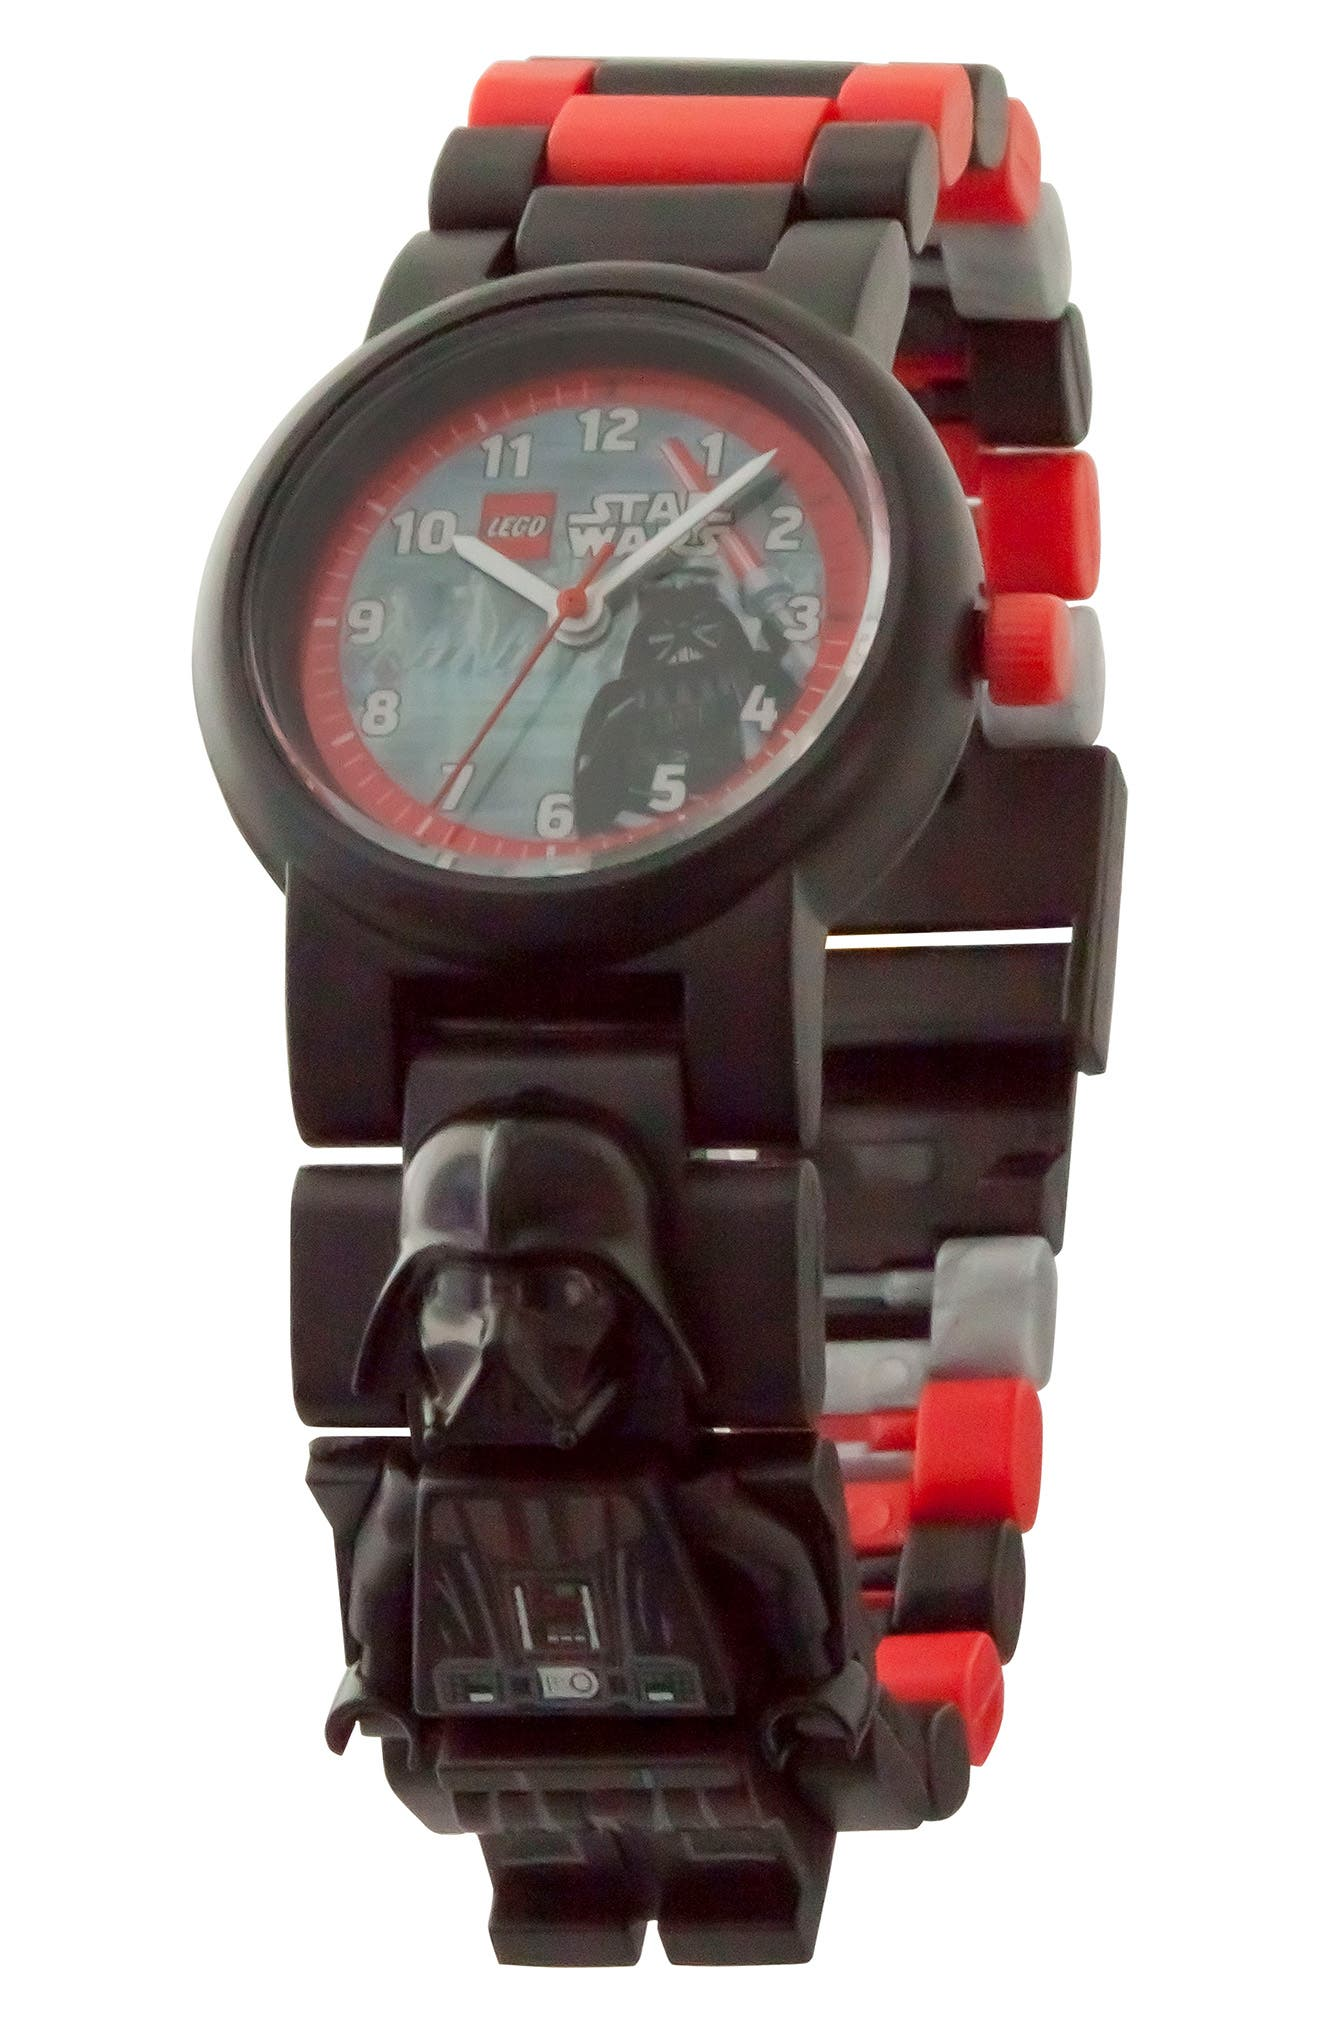 24-Piece Star Wars<sup>™</sup> Darth Vader Buildable Water-Resistant Watch,                             Alternate thumbnail 2, color,                             Black